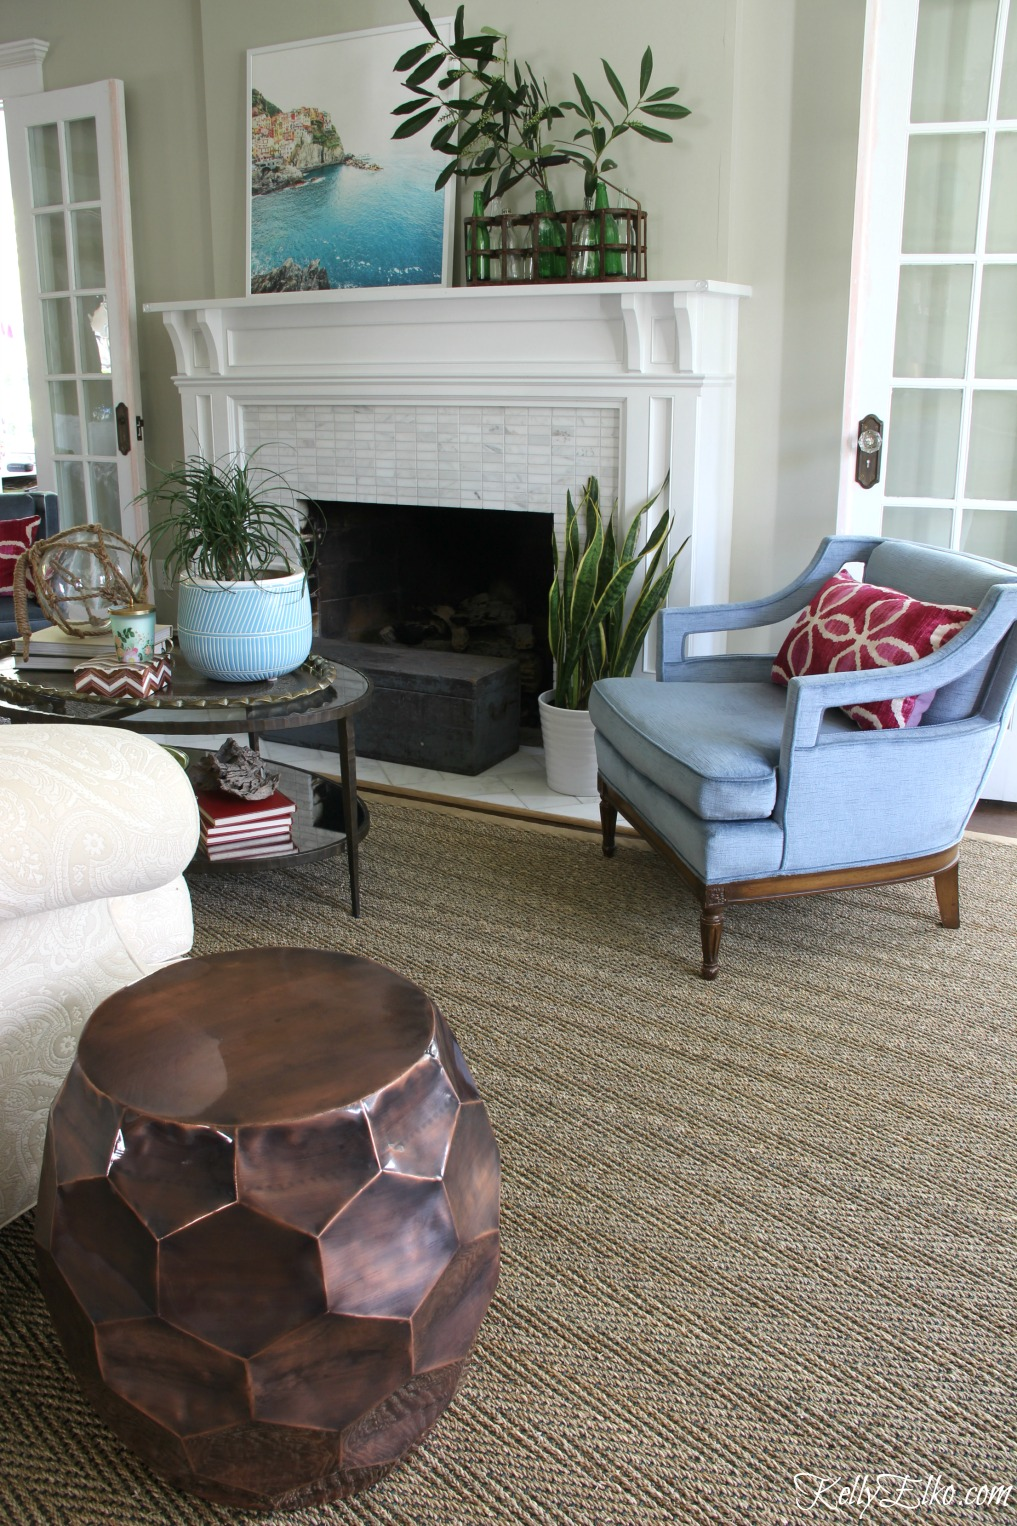 Beautiful living room in shades of blue - love the seagrass rug and vintage blue velvet chairs kellyelko.com #sisal #sisalrug #rugs #livingroomdecor #manteldecor #kellyelko